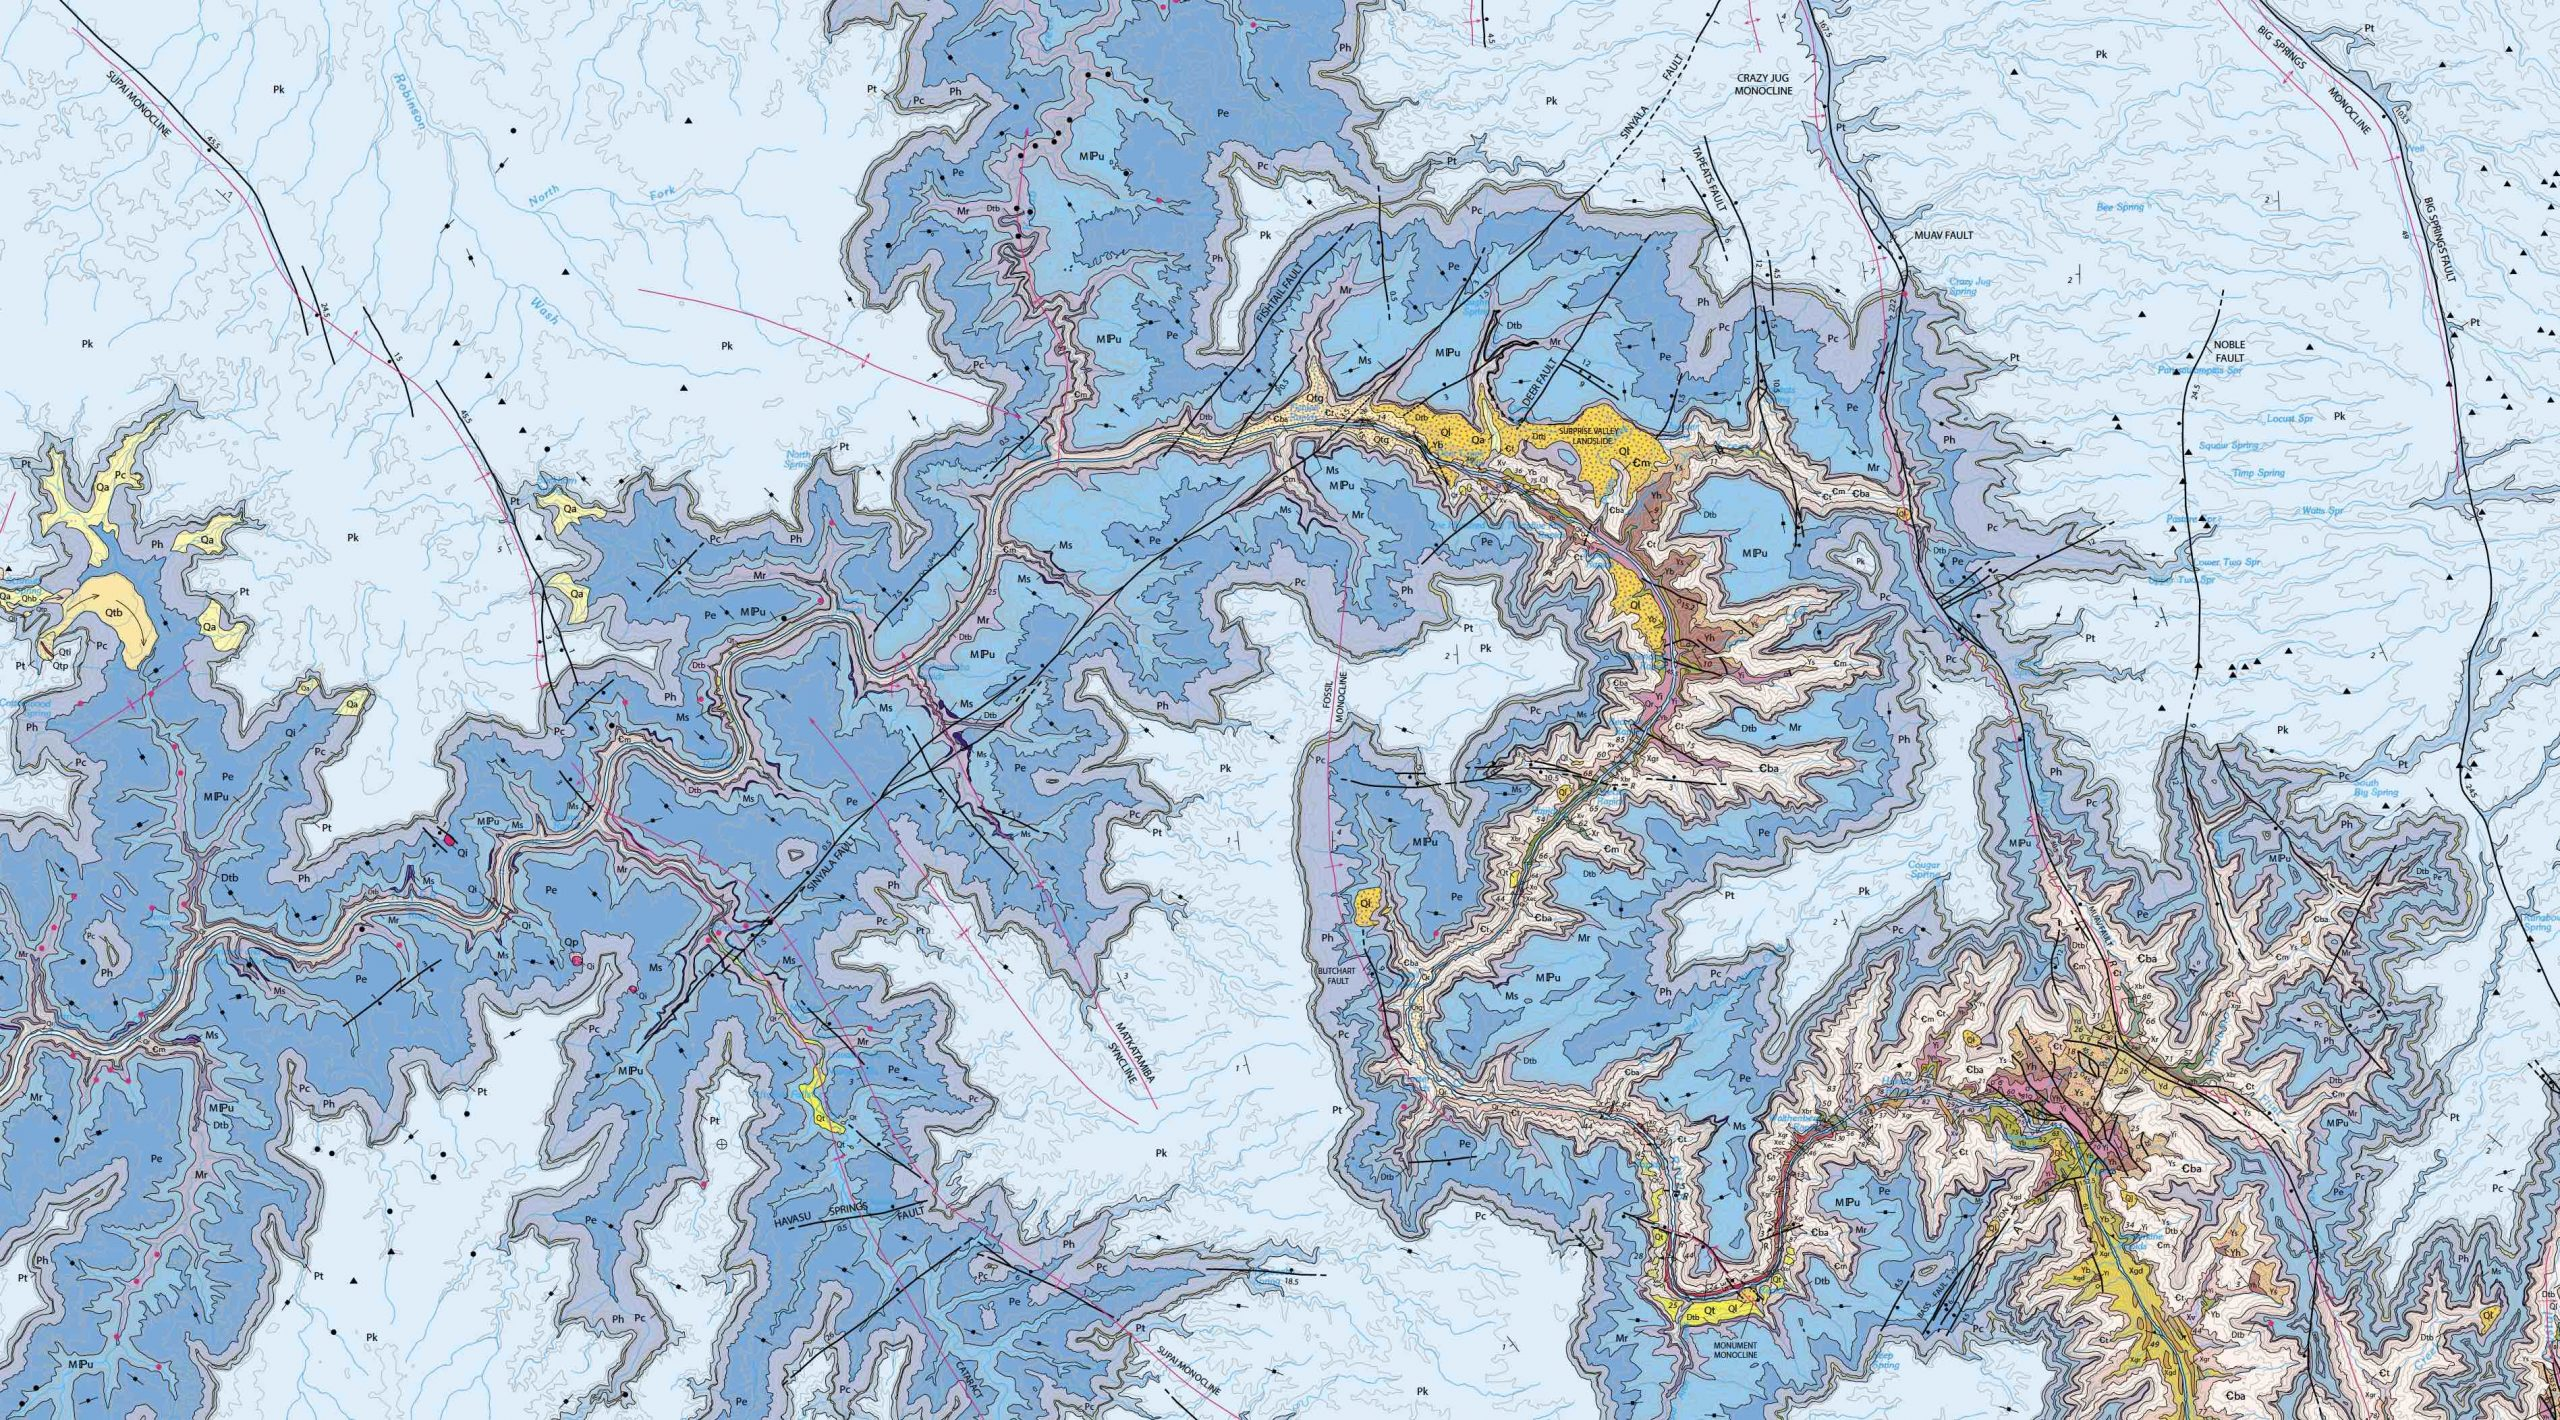 Geologic map of the Grand Canyon